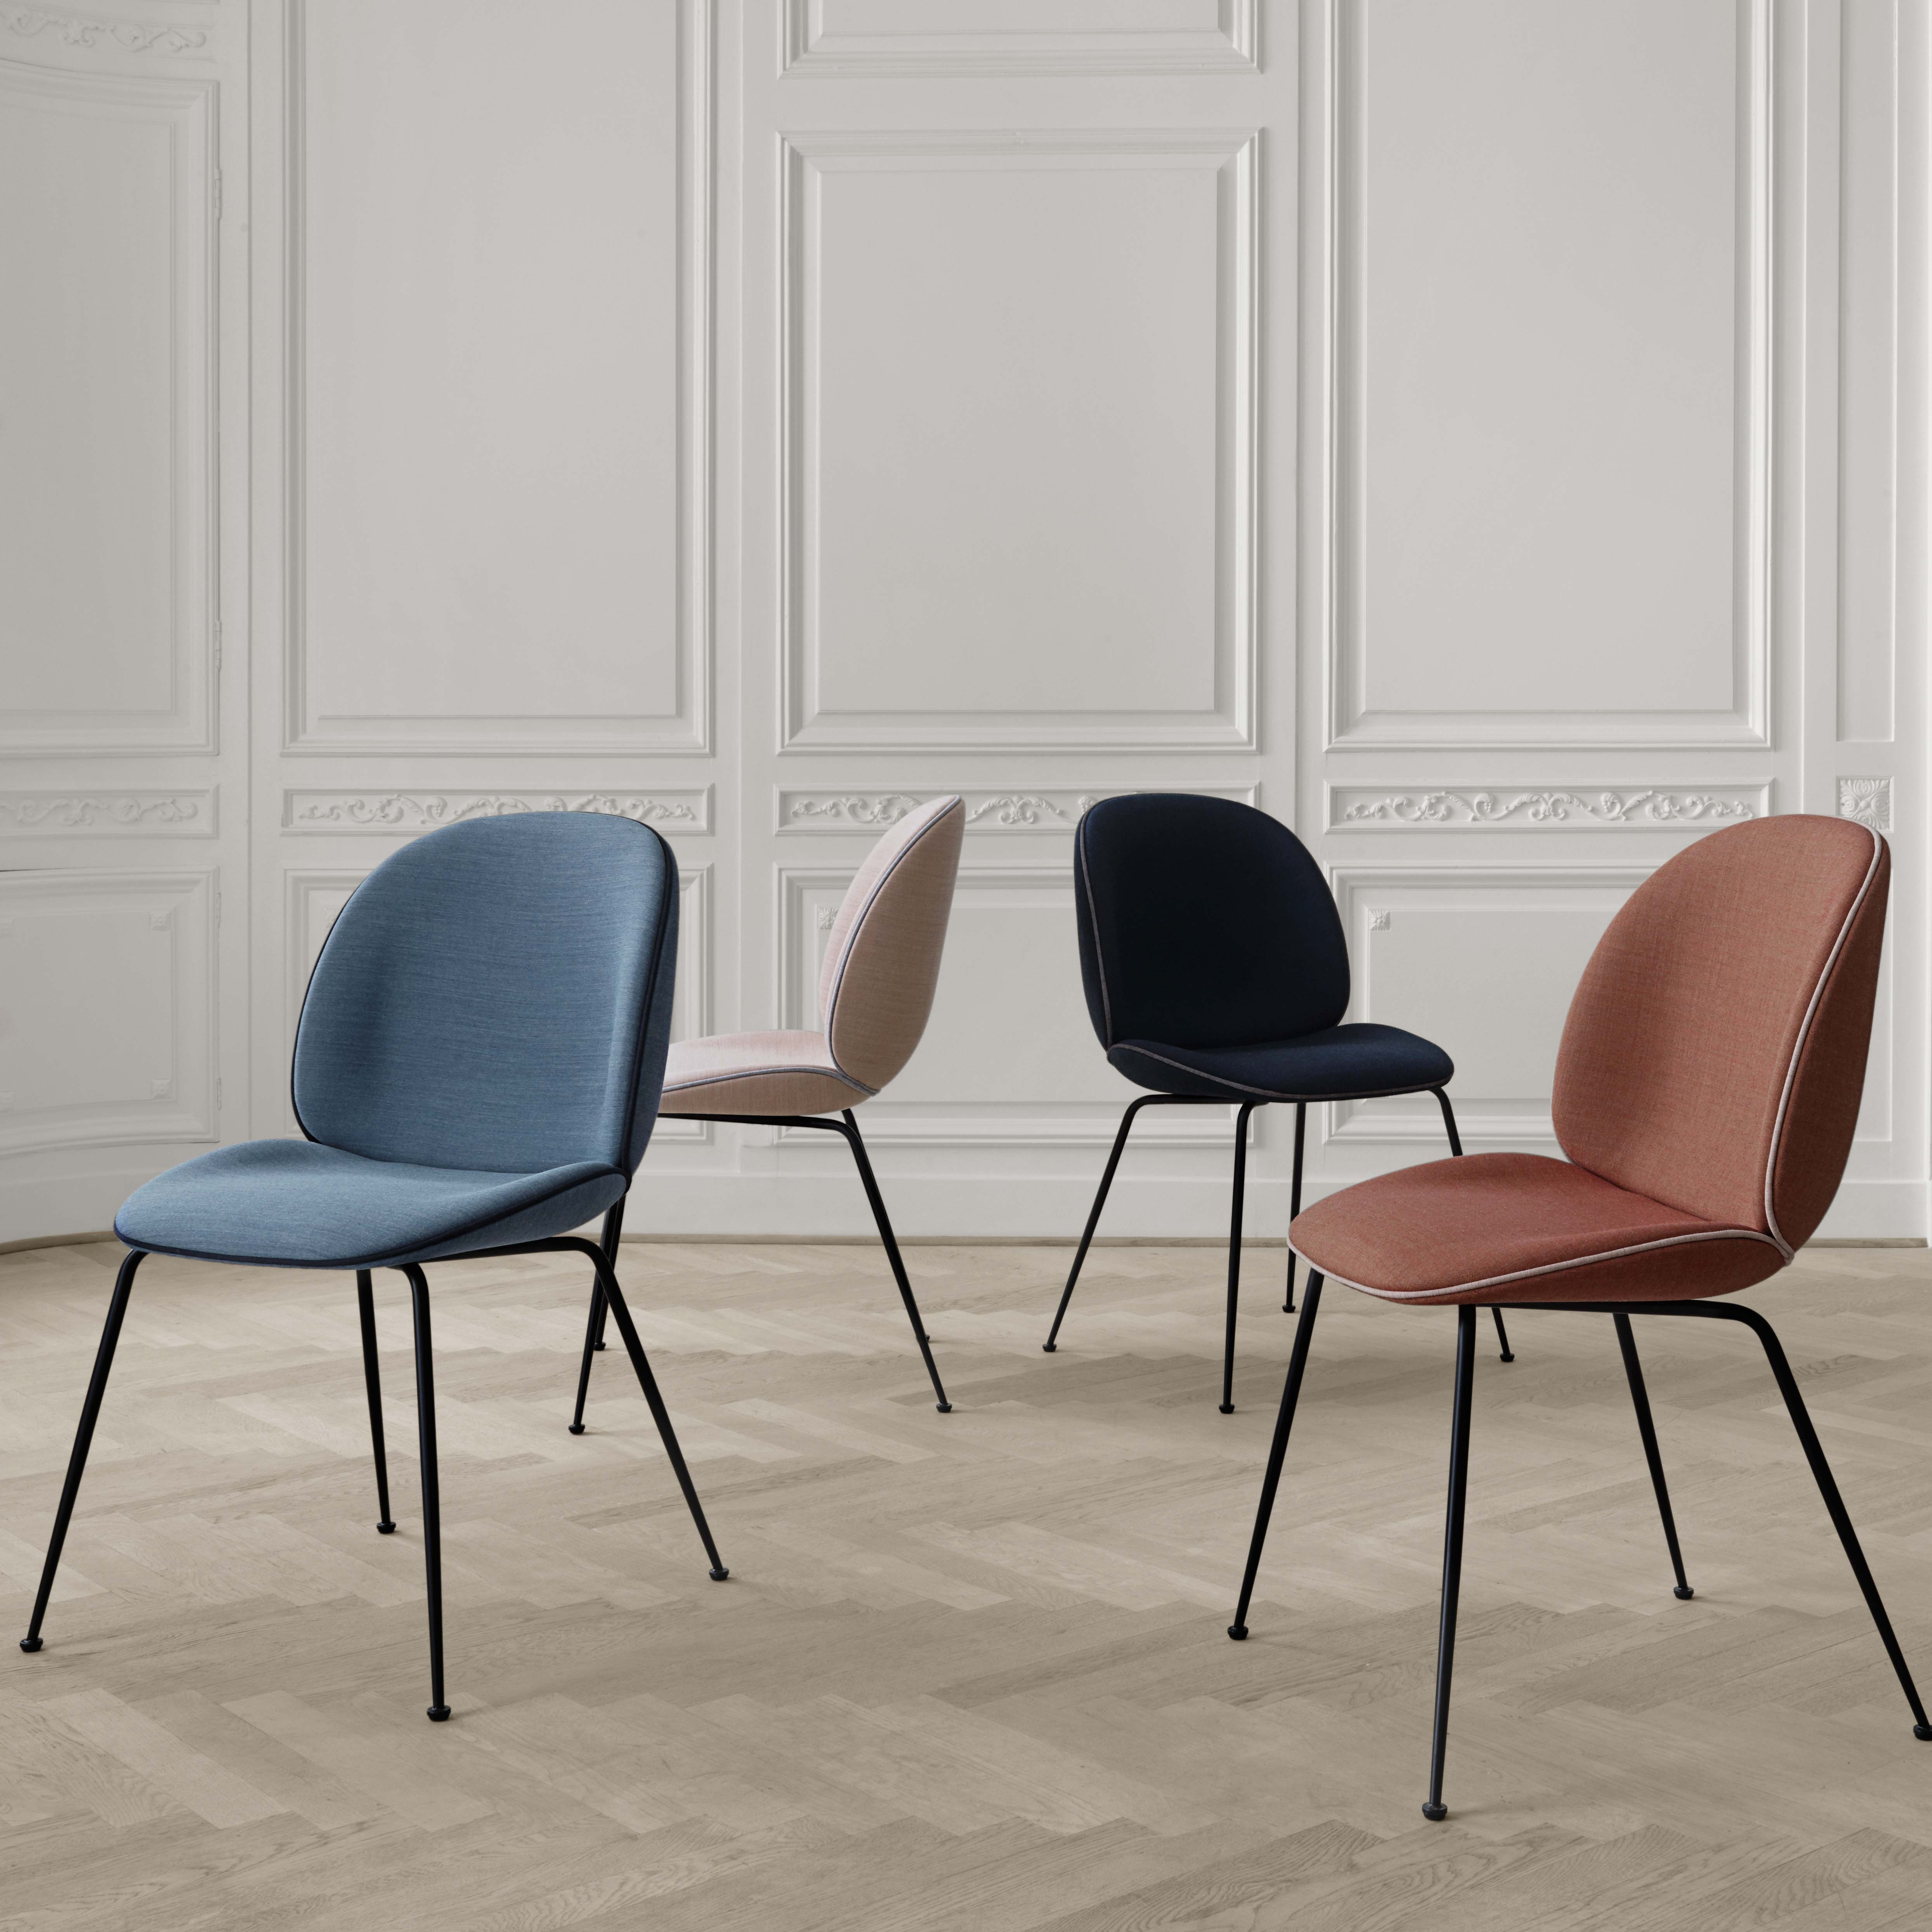 Beetle chair fra Gubi